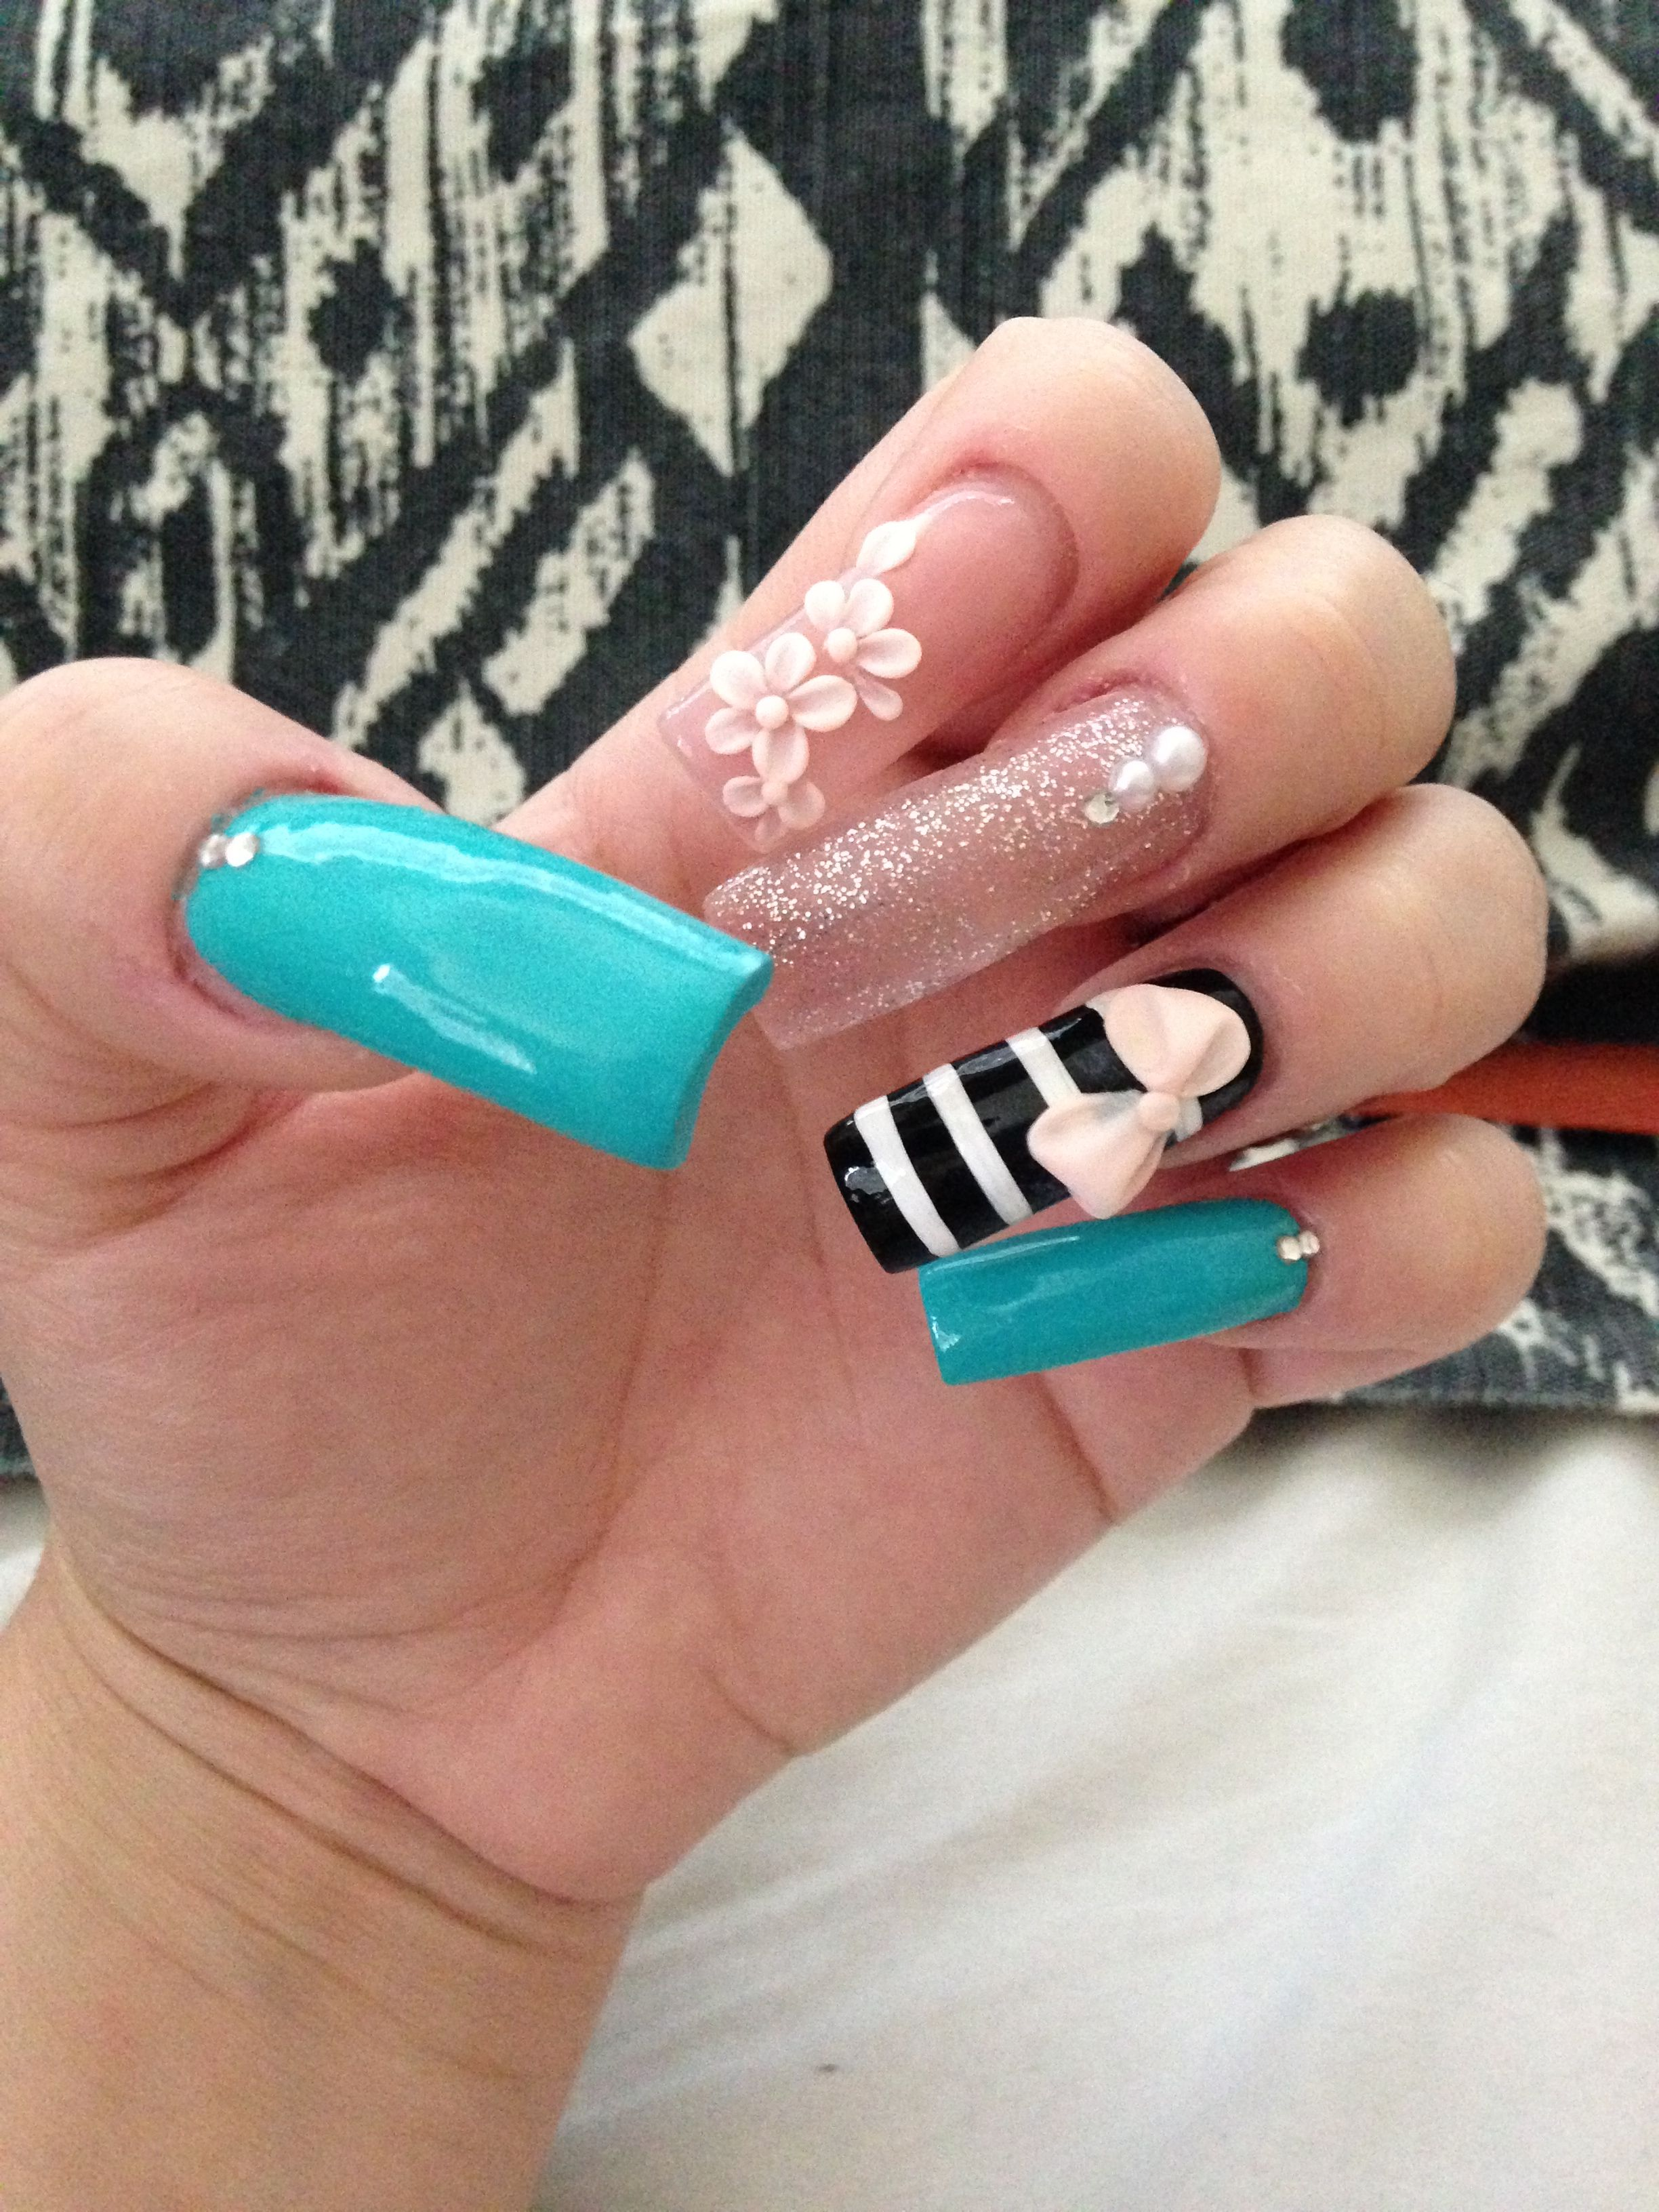 Nails Done By Vanessa Colón Kissimmee Fl